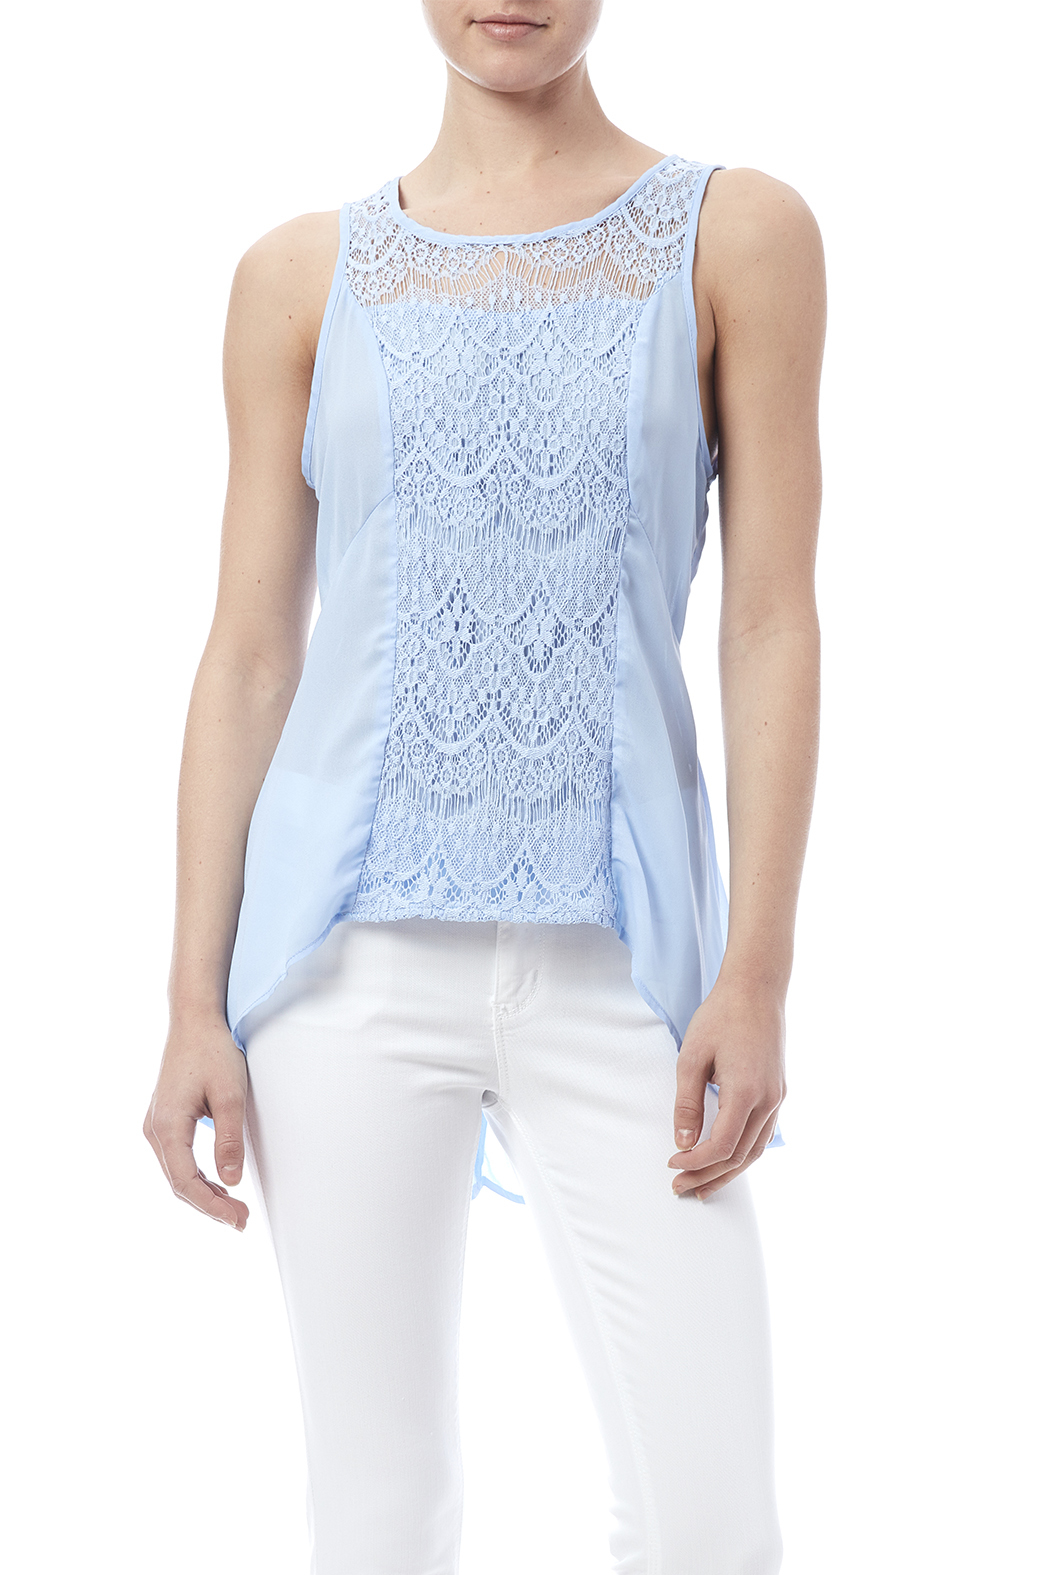 BeYoutiful Blue Lace Tank - Front Cropped Image